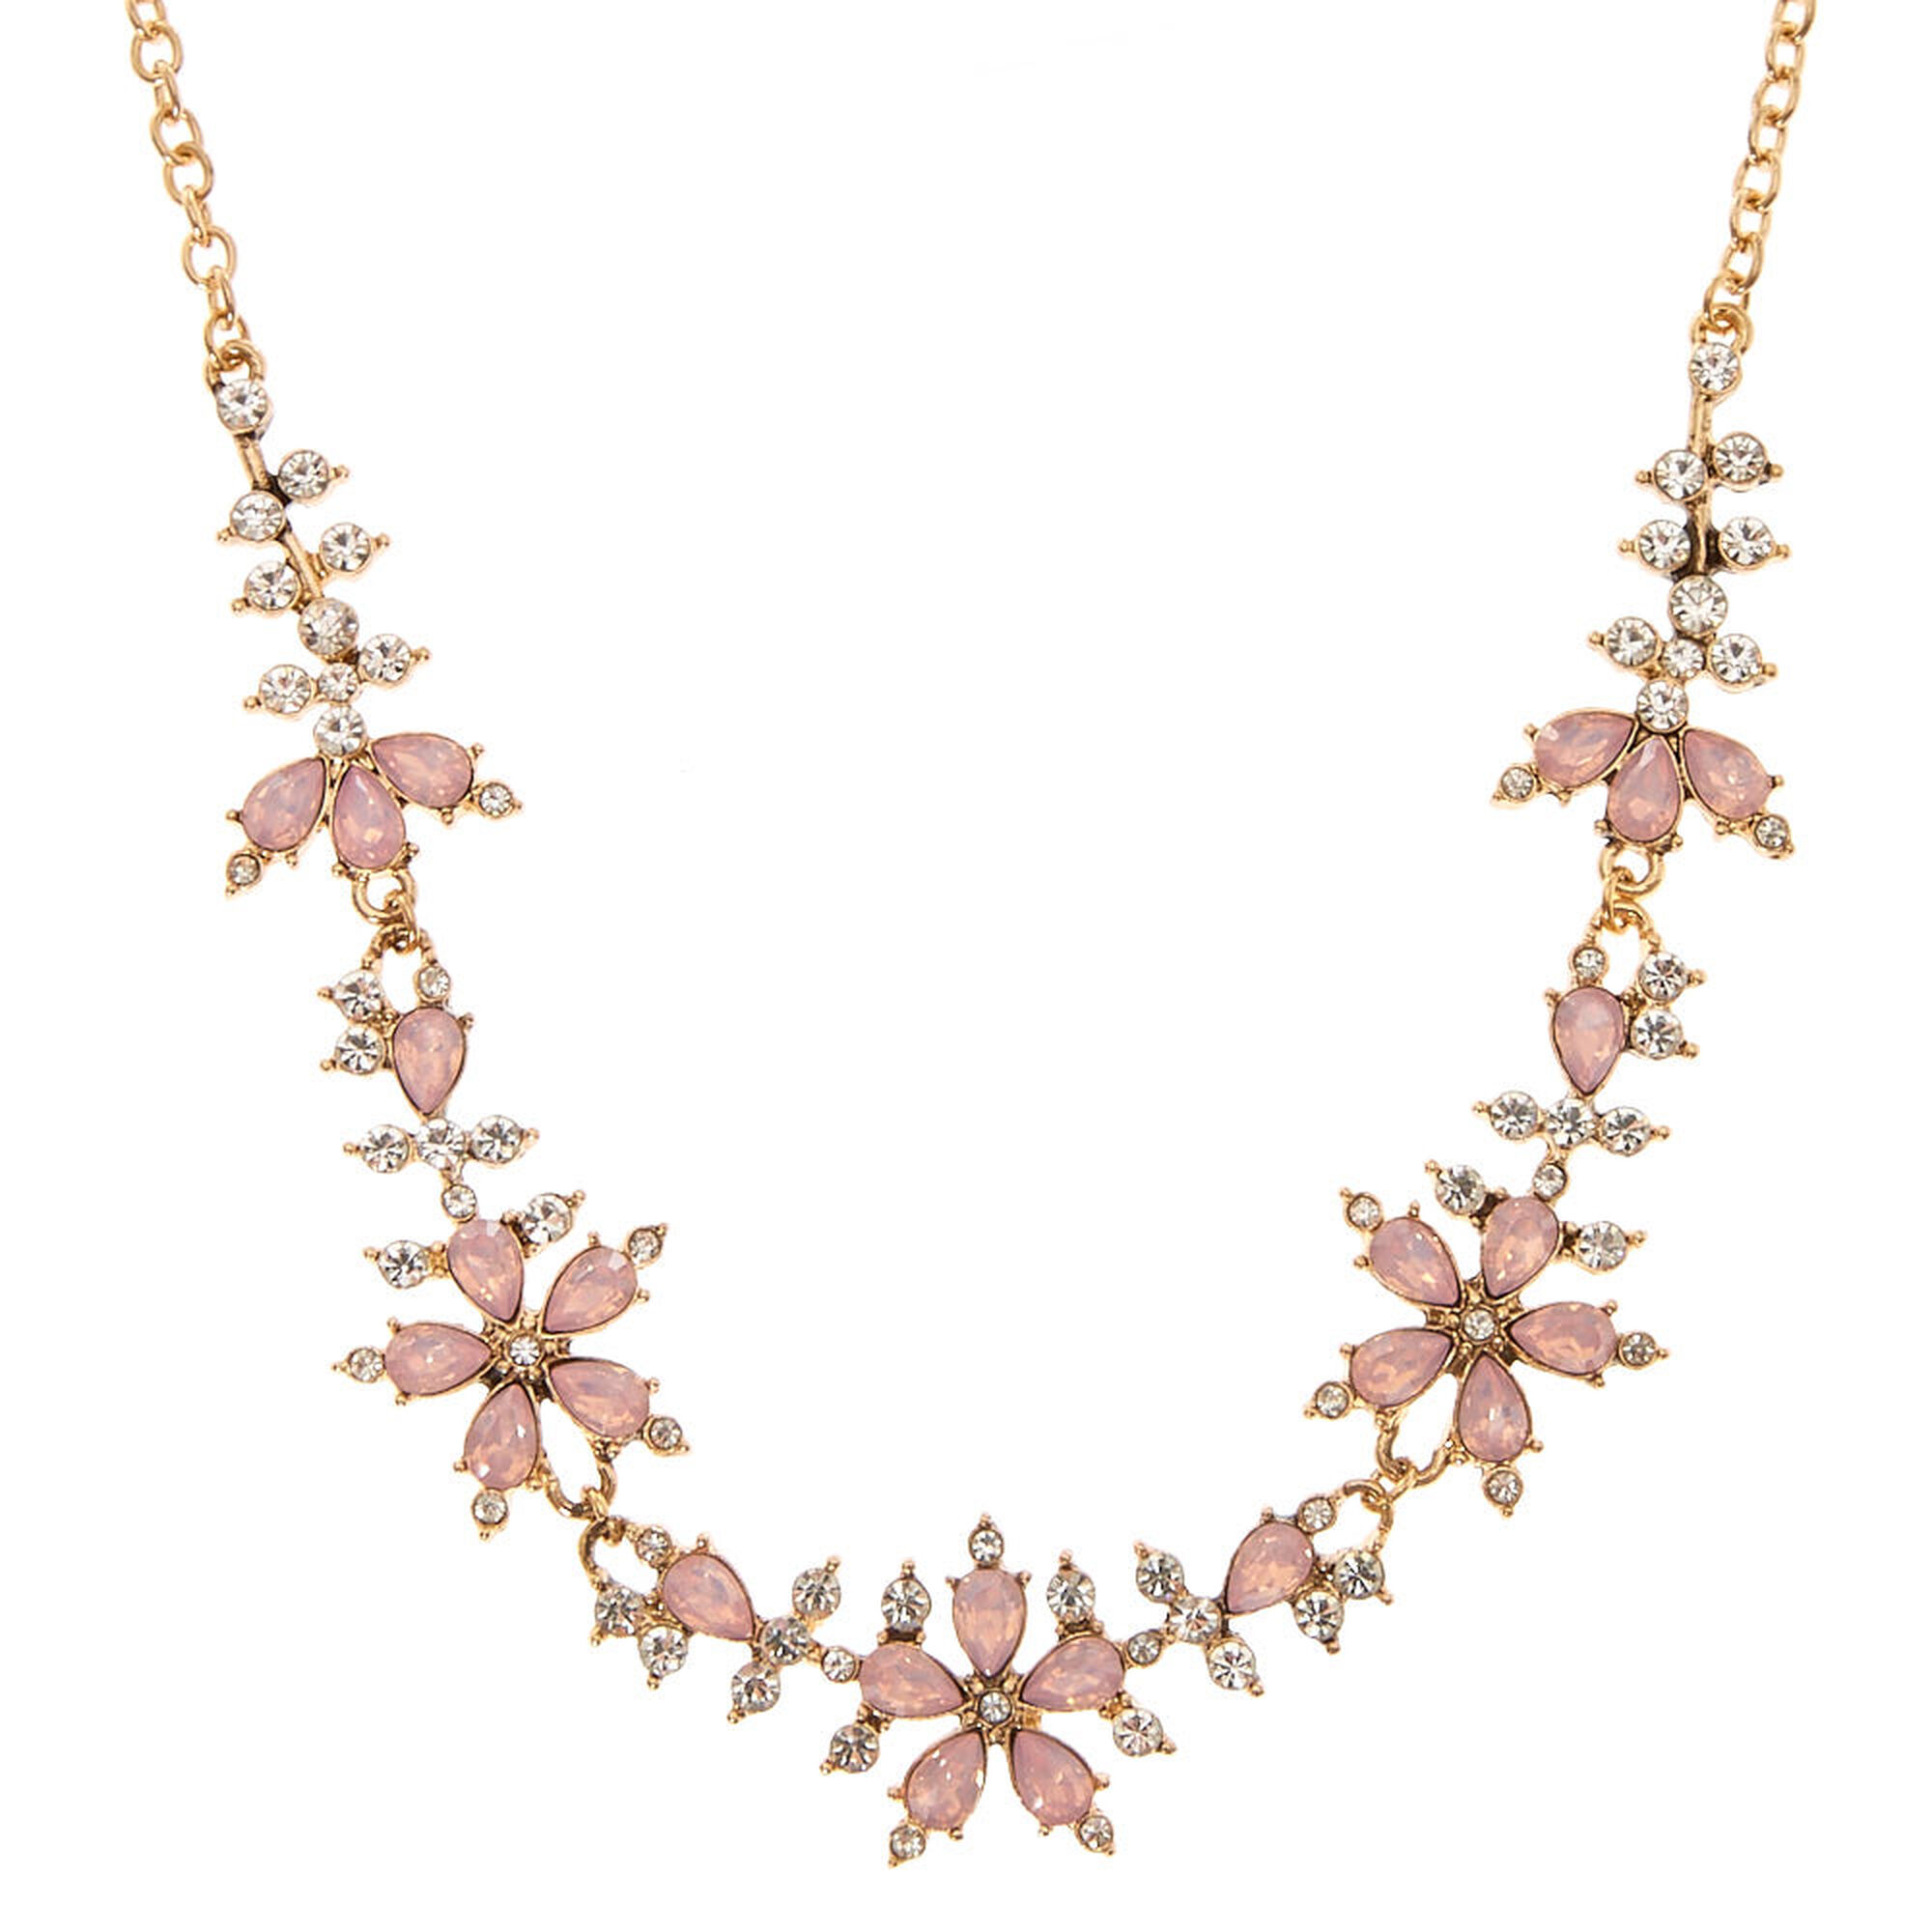 champagne necklace of product statement grande gold the rose products jewellery jewelry crystal bridal images